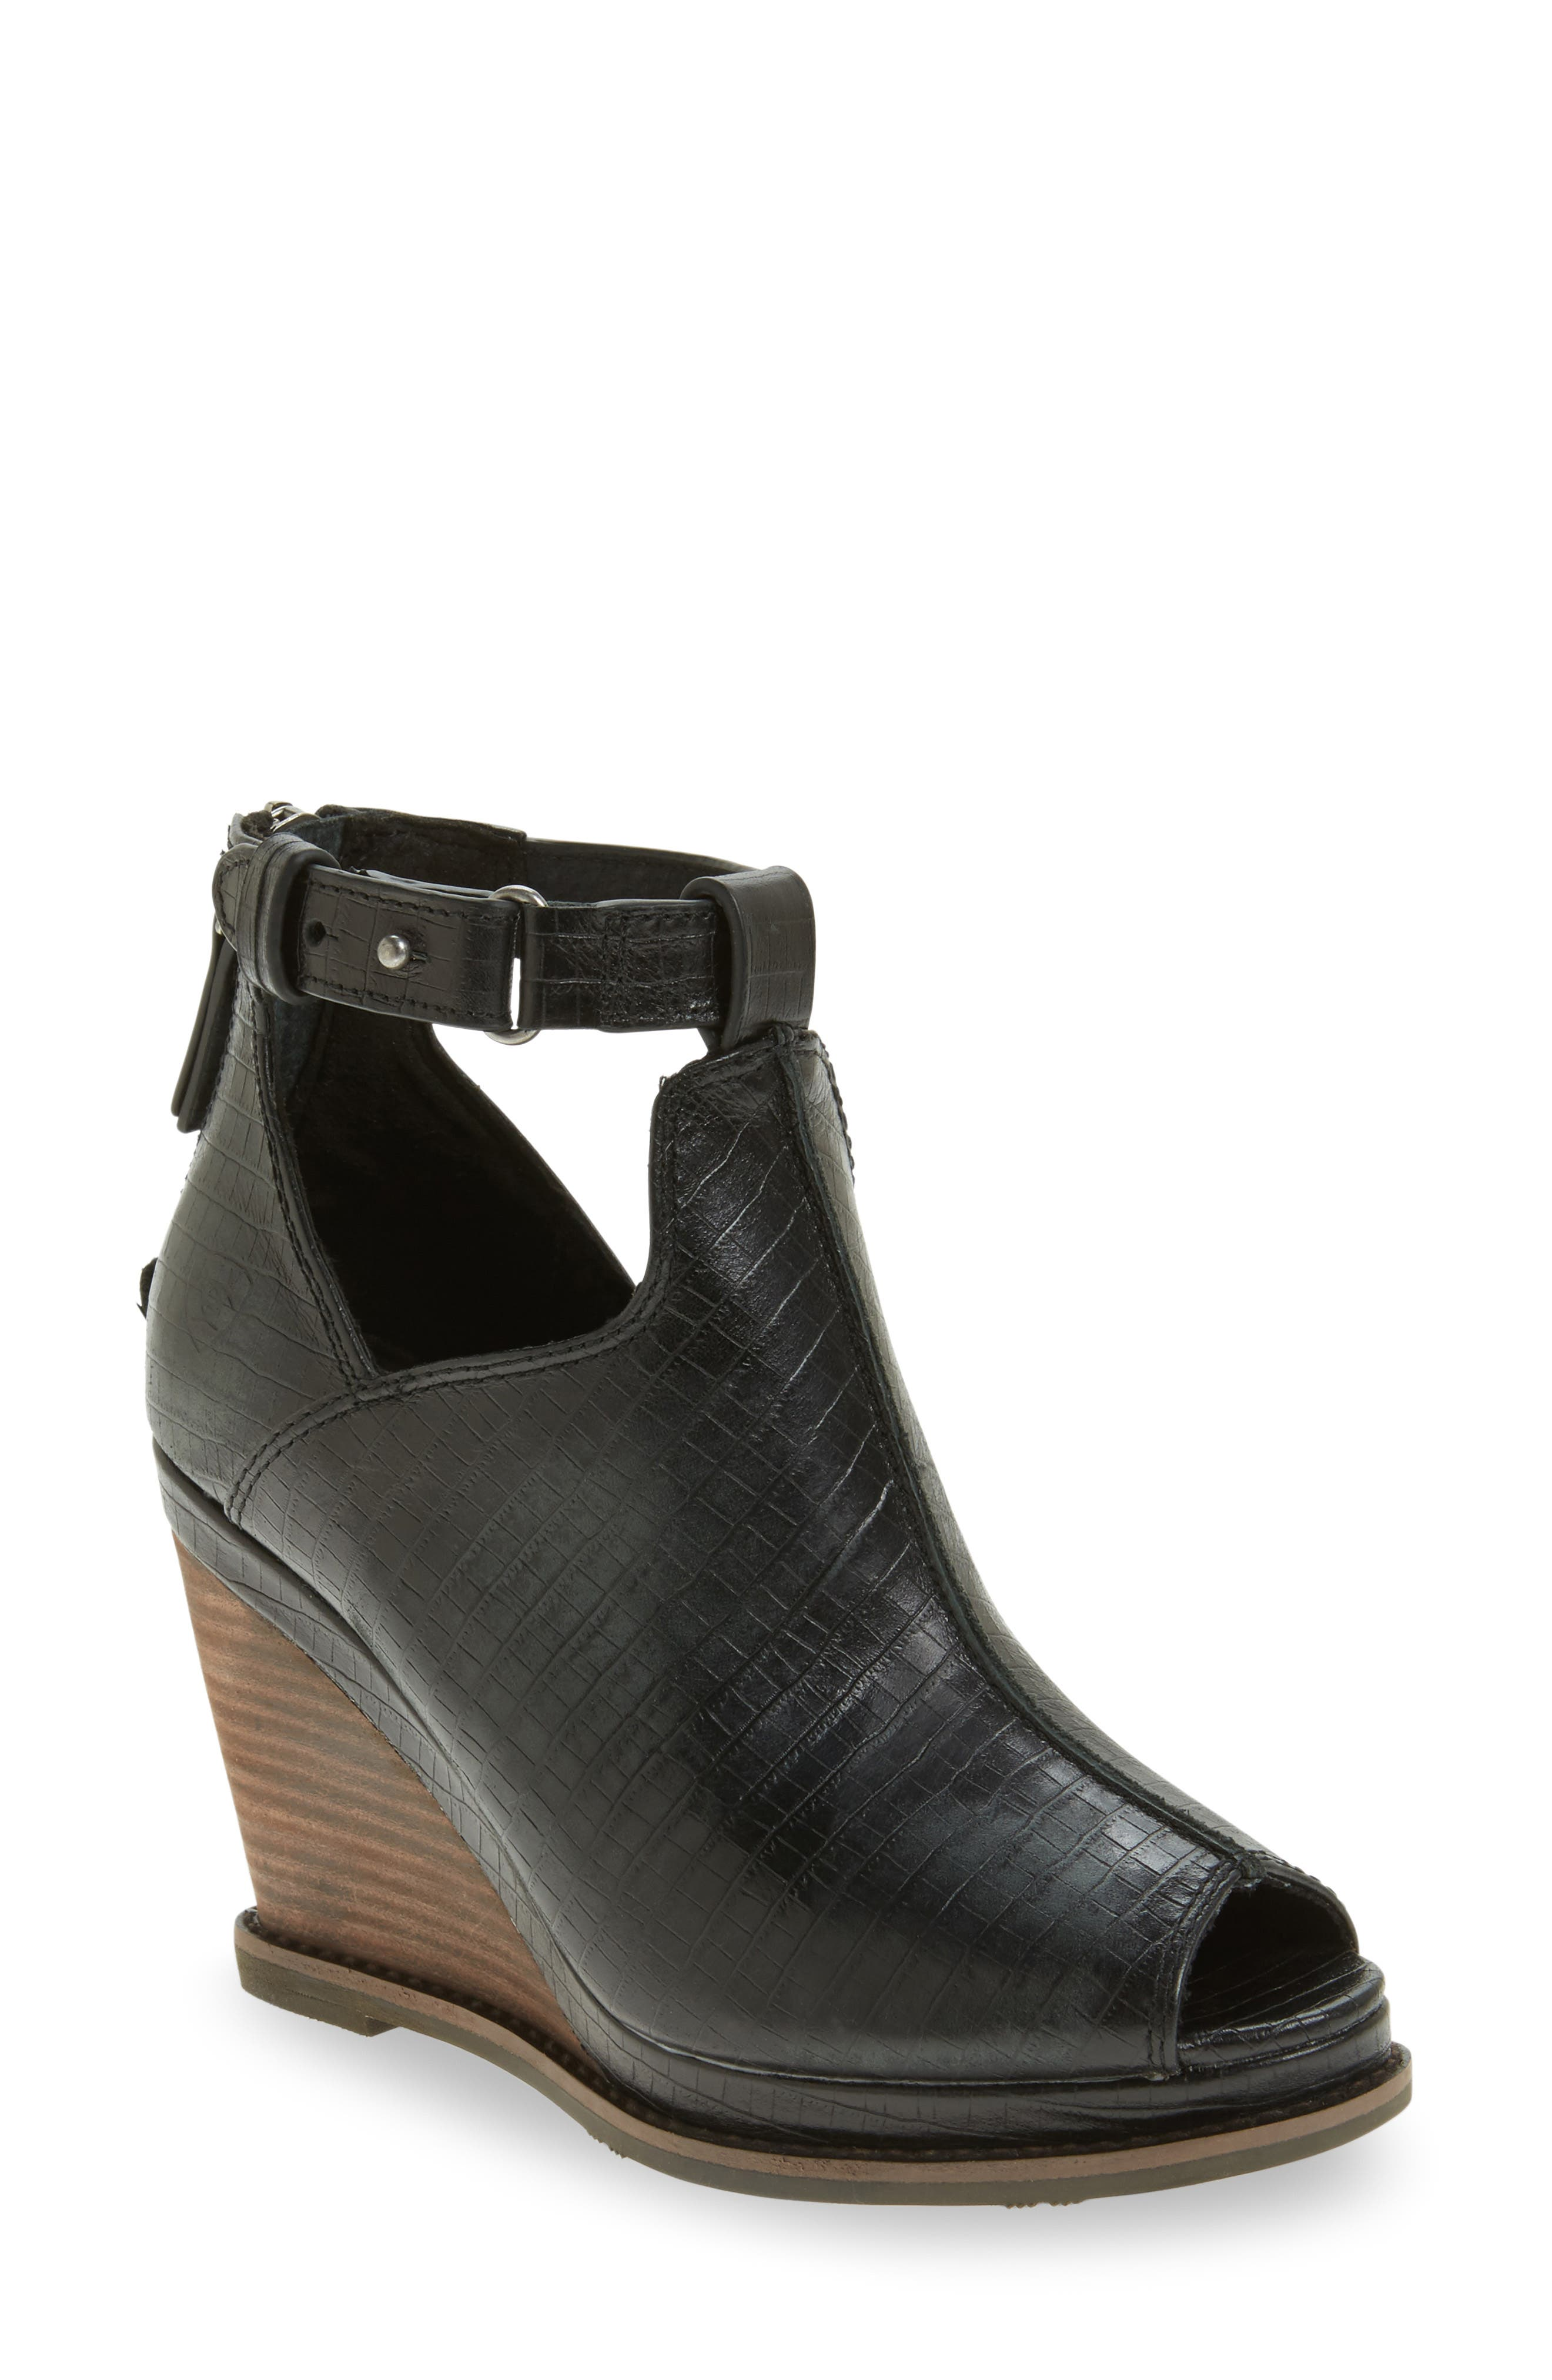 Backstage Wedge Bootie,                         Main,                         color, 001